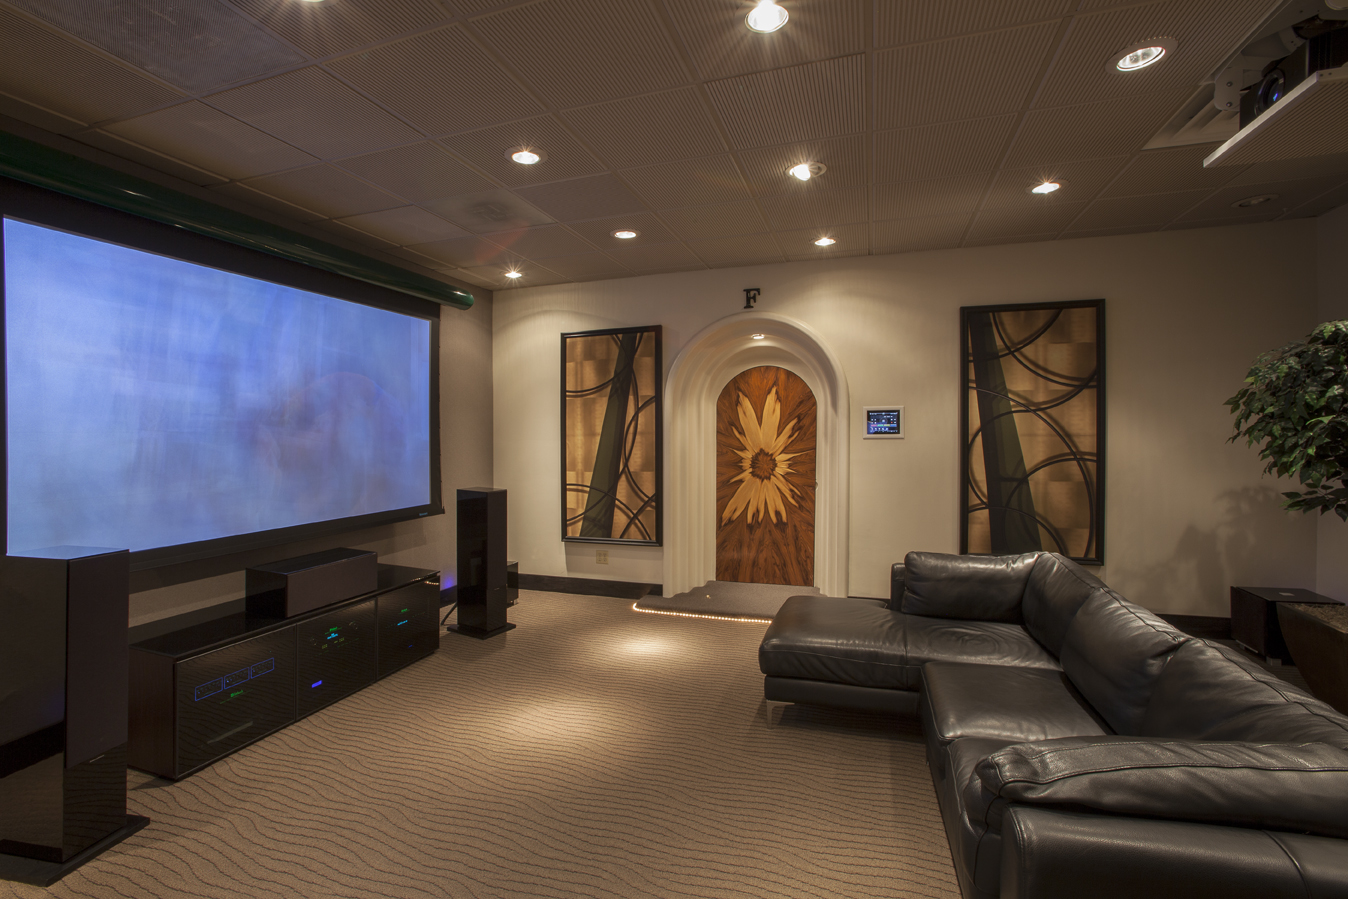 Living Room With Projector And Projector Screen In Ceiling Tv